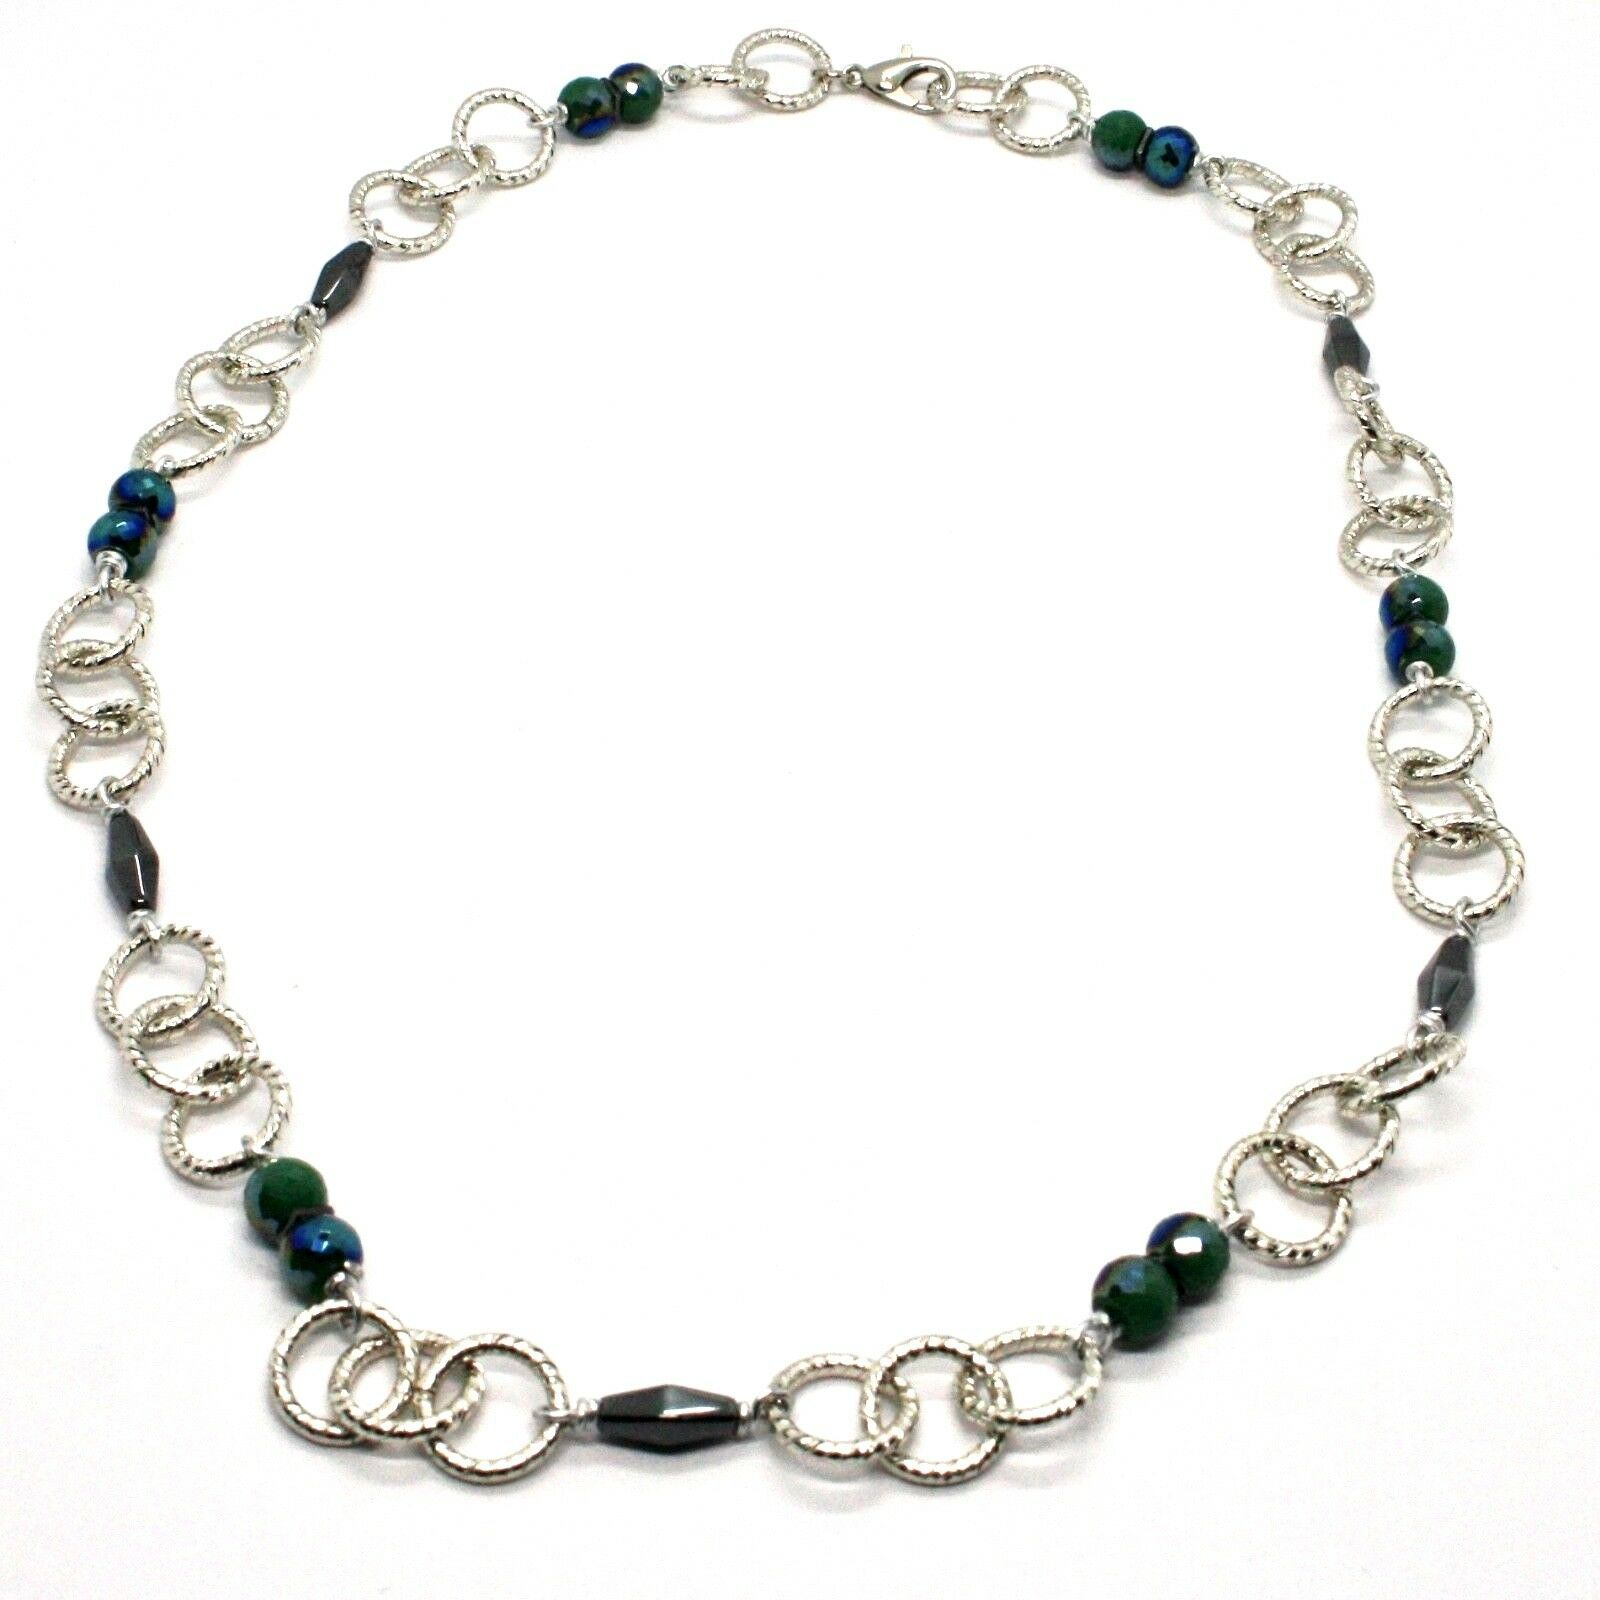 Necklace the Aluminium Long 60 Inch with Hematite Faceted and Crystal